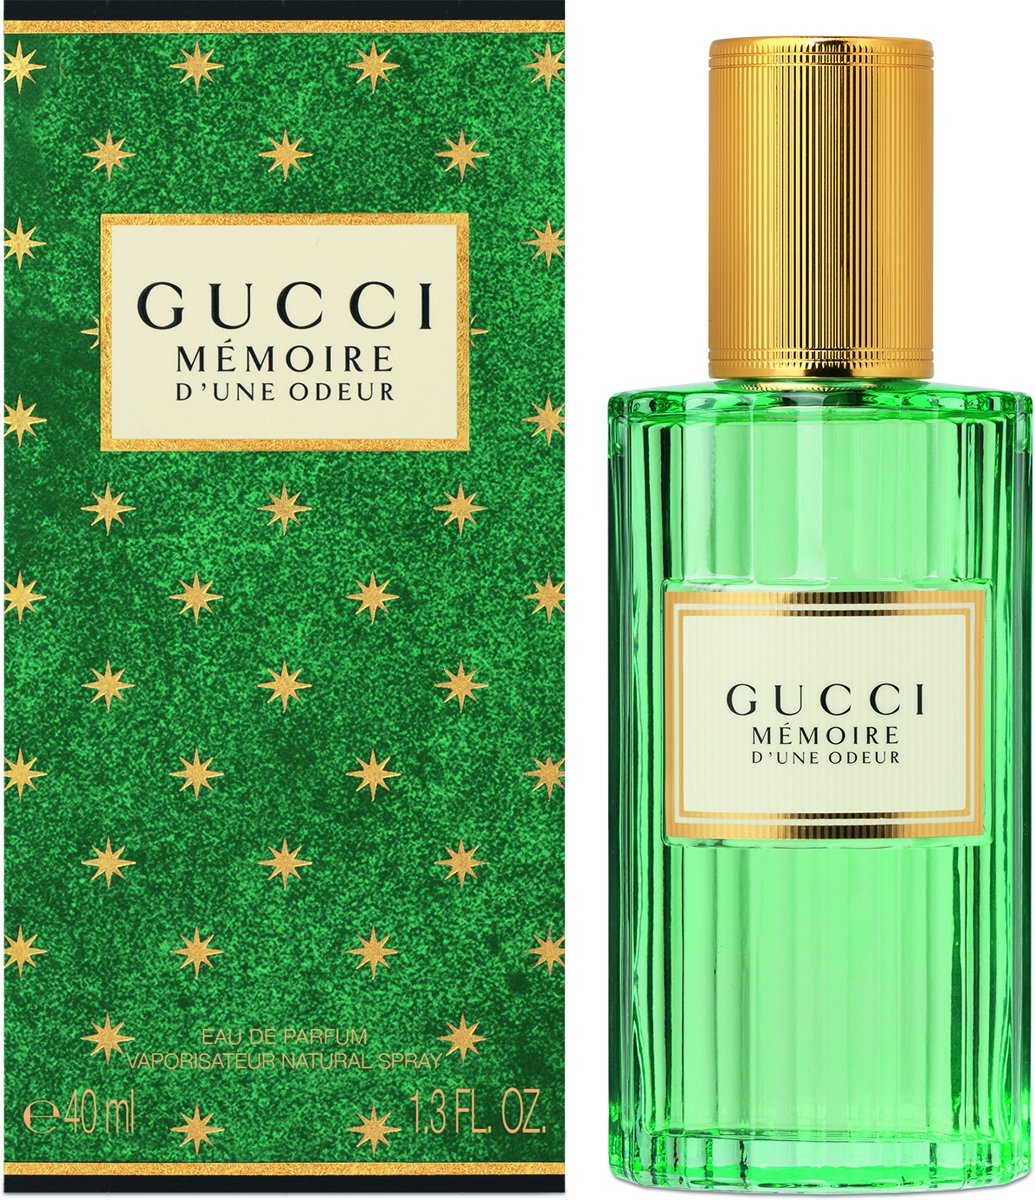 Gucci MÉMOIRE DUNE ODEUR edp spray 40 ml